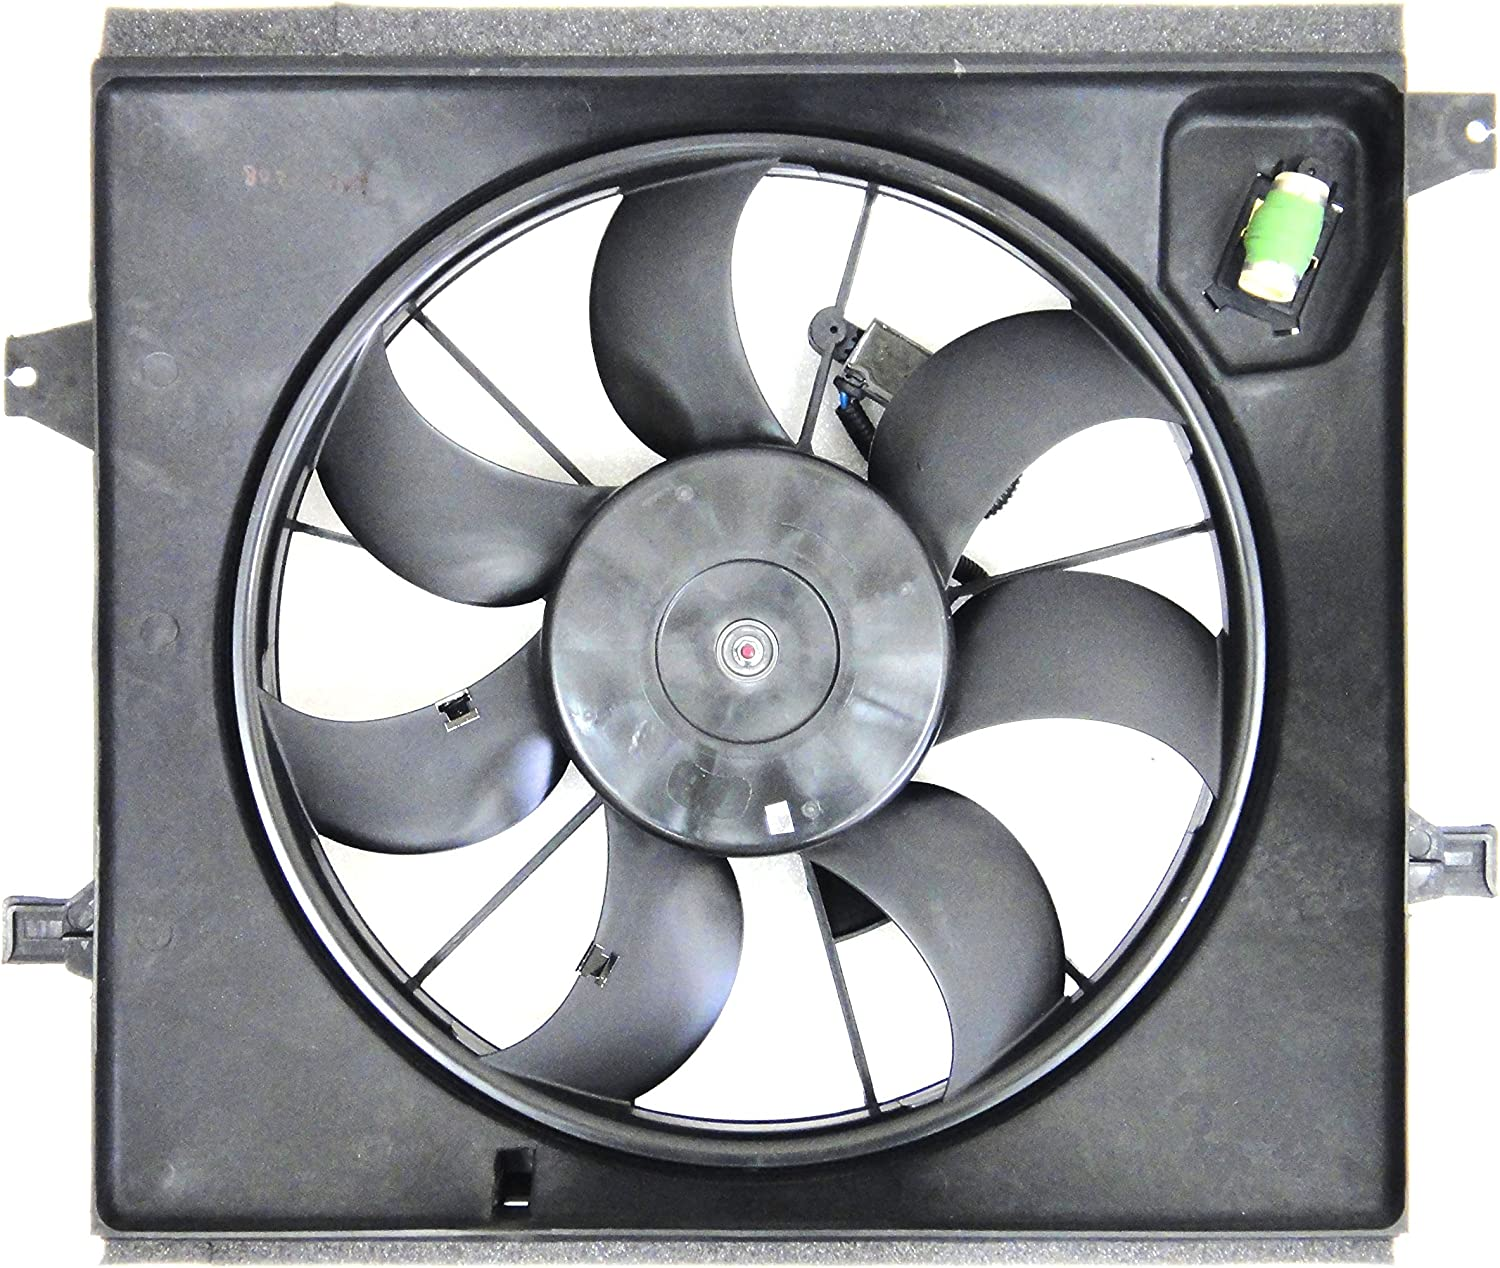 Depo 323-55026-000 Radiator/Air Conditioner Fan Assembly (KIA SOL 1.6L 10-11 ASSEMBLY)